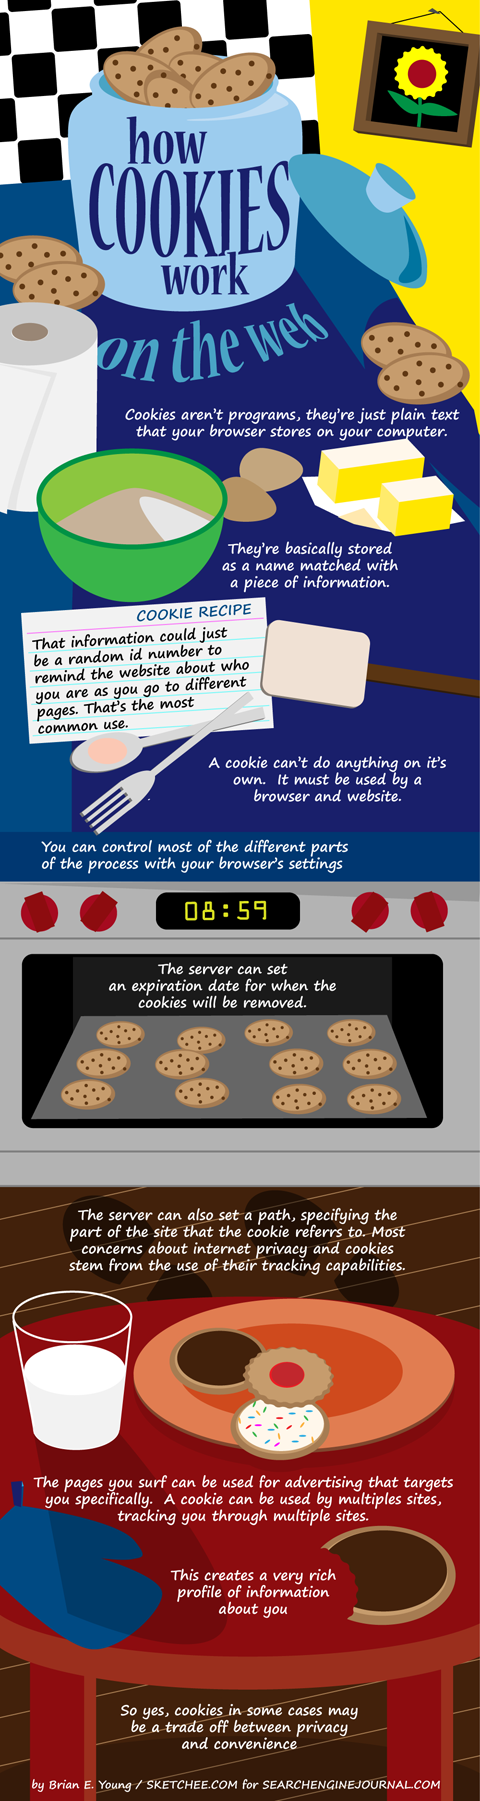 Cookies Infographic What are cookies and how do they work?